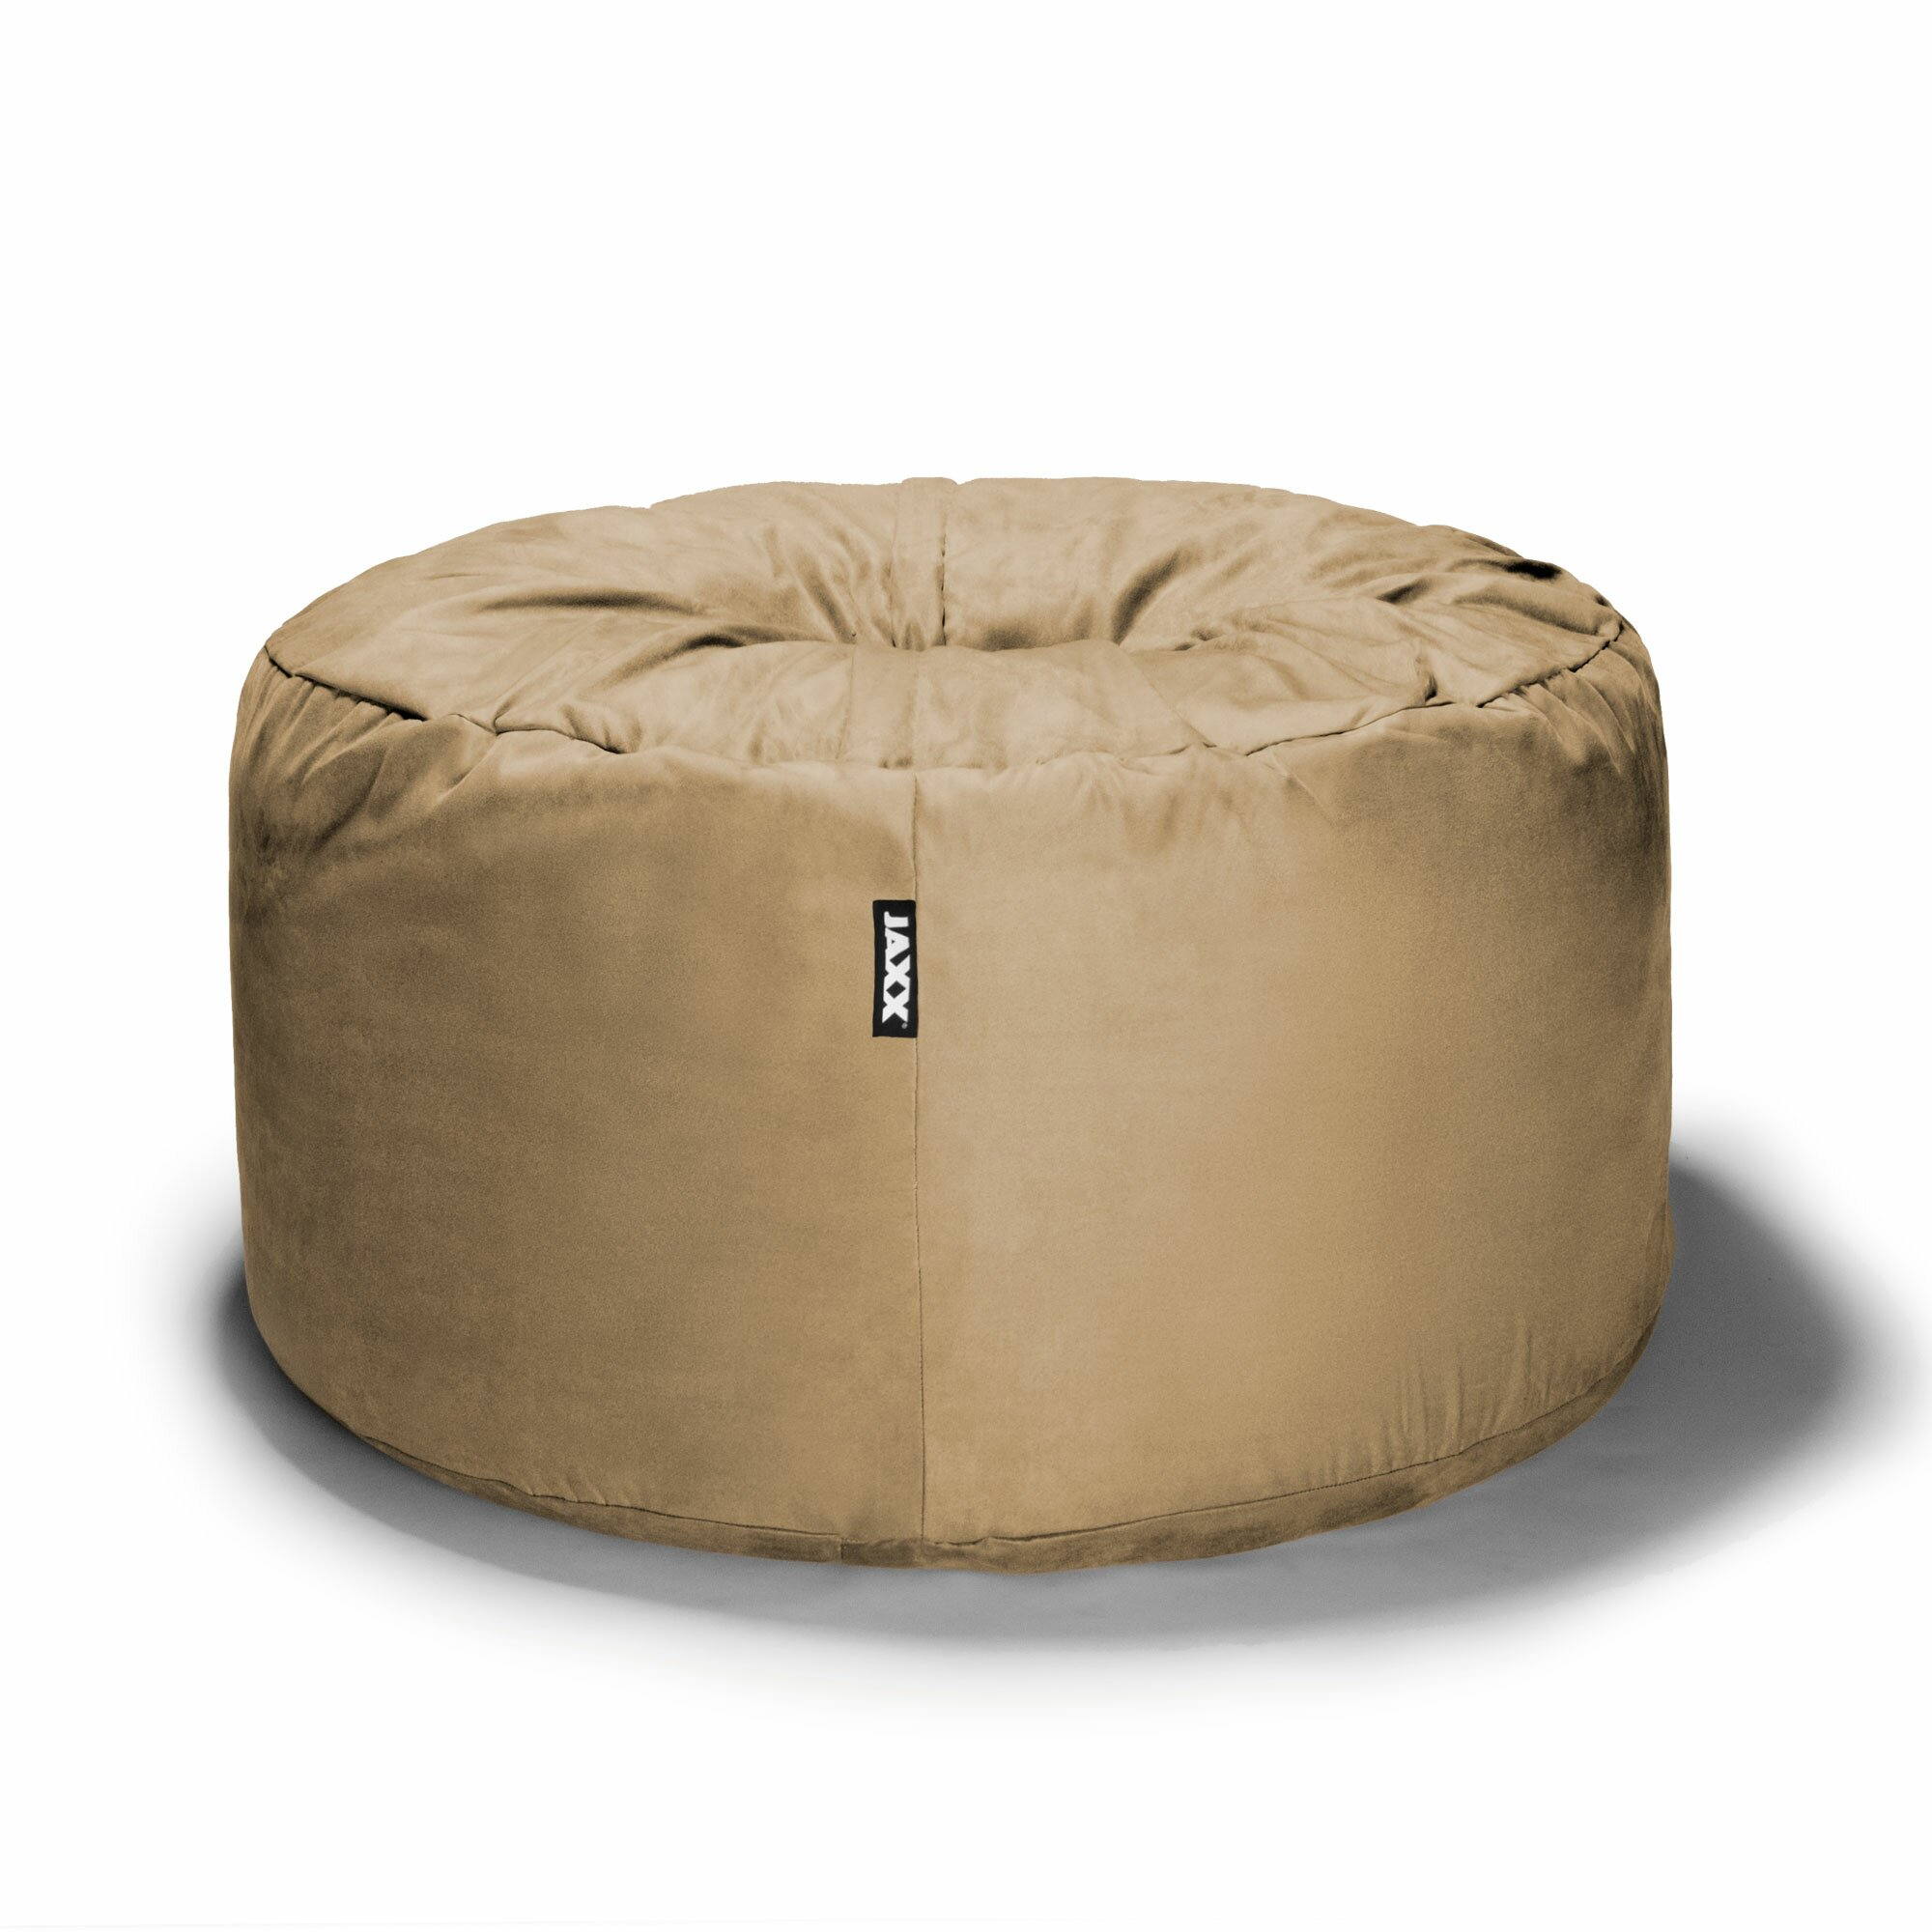 Giant Water Stain Resistant Beanbag Pool 1716434841 together with Fauteuil Lounge Cocoon En Eponge Super Moelleux Pour Une Invitation A La Detente Et Relaxation as well Giant Bean Bag Chairs moreover Giant Cloud Cushions in addition Giant Beanbag. on giant bean bag chair lounger